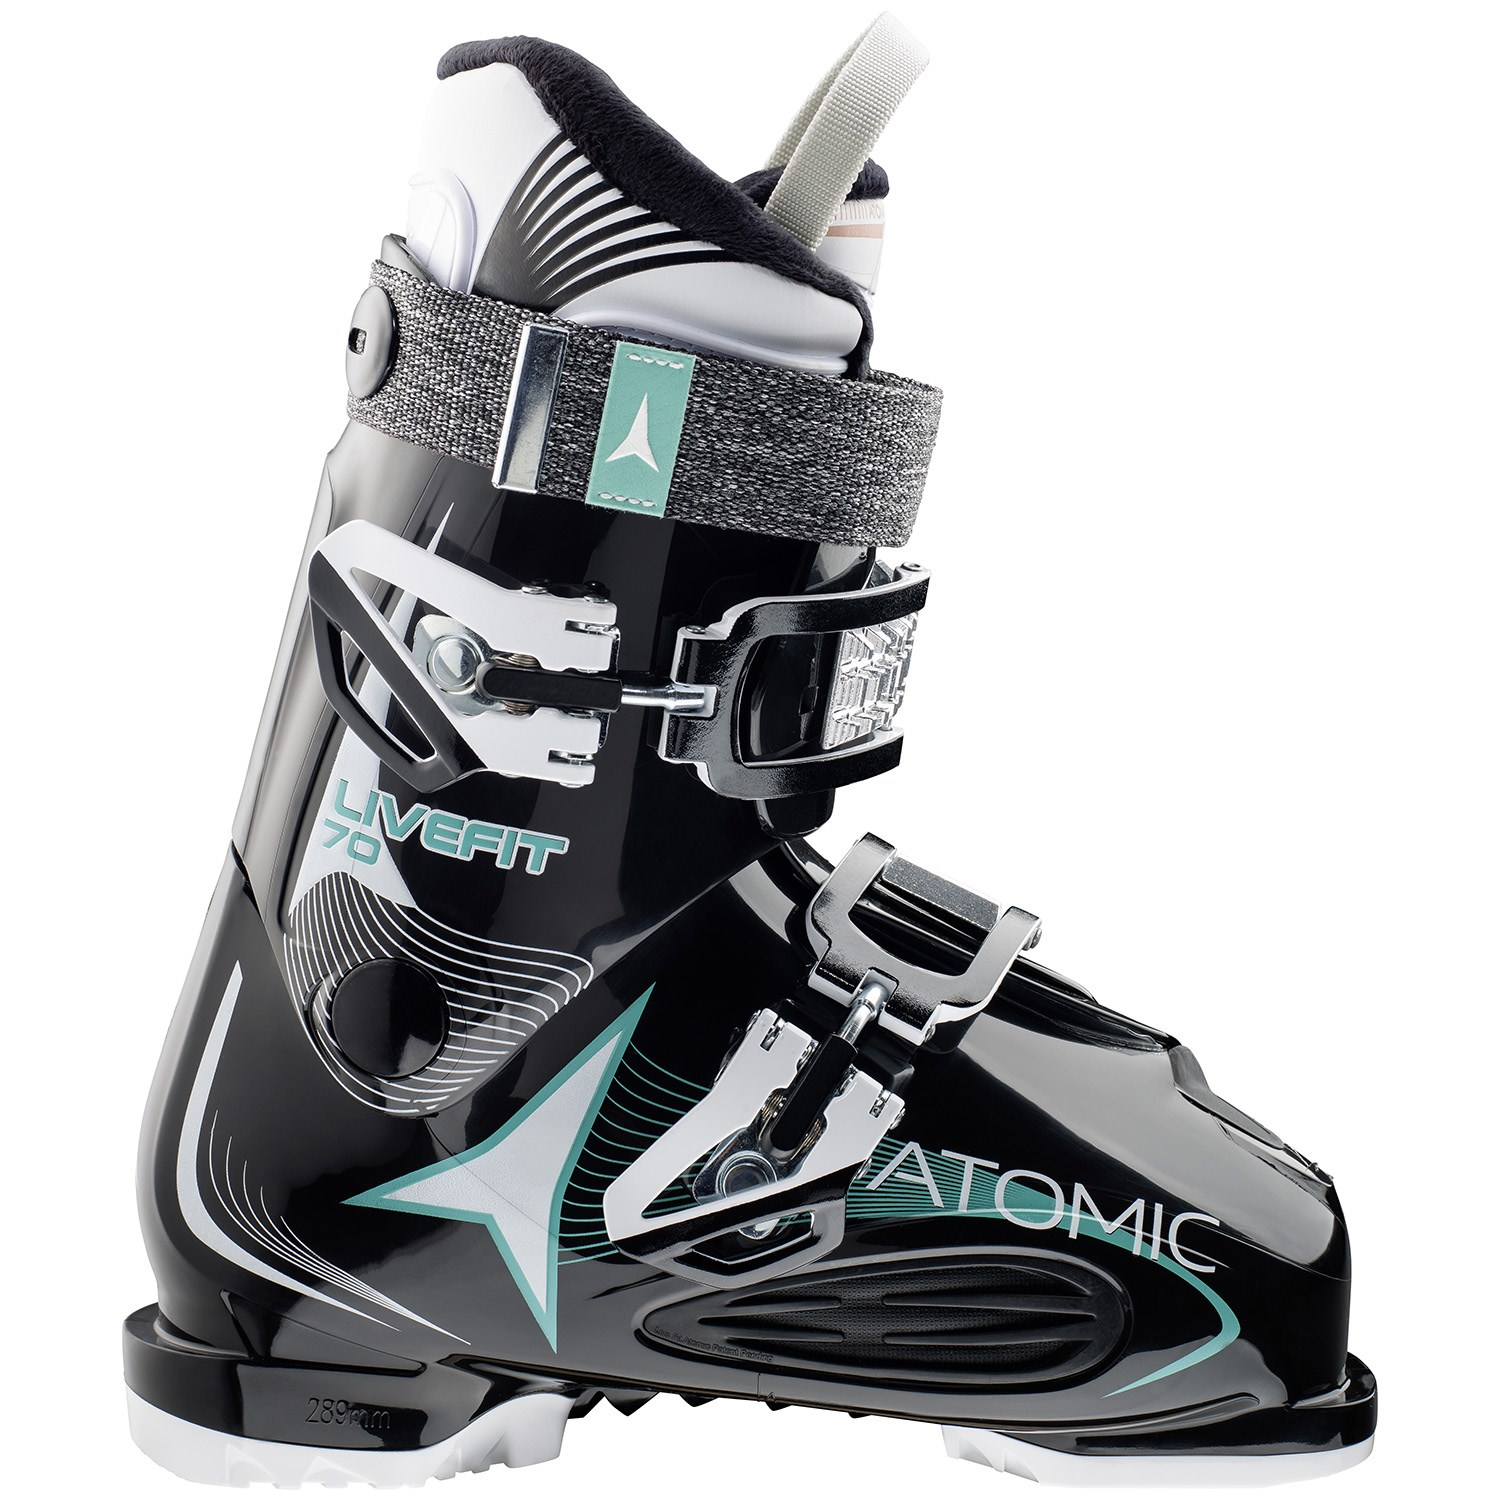 Atomic Live Fit 70 Ski Boots Women S 2017 Evo Building strength with weight training is possible at any age, and some studies published in 2009 show women in their 70s building significant muscle by lifting weights 2 to 3 times per week. atomic live fit 70 ski boots women s 2017